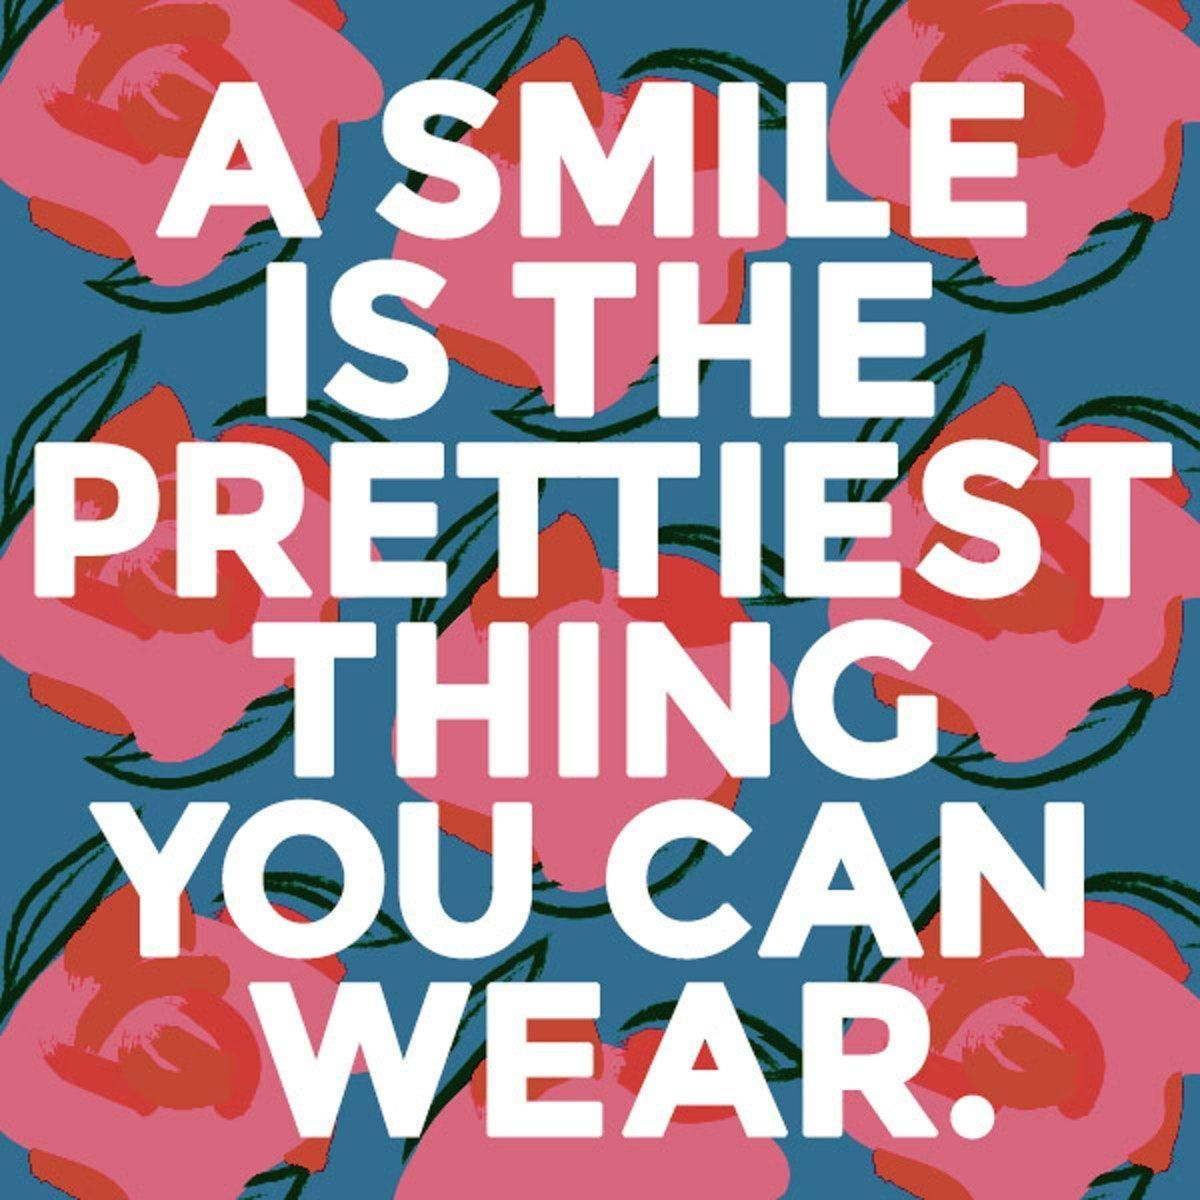 What Made You Smile Today? inspirationalquotes quotes